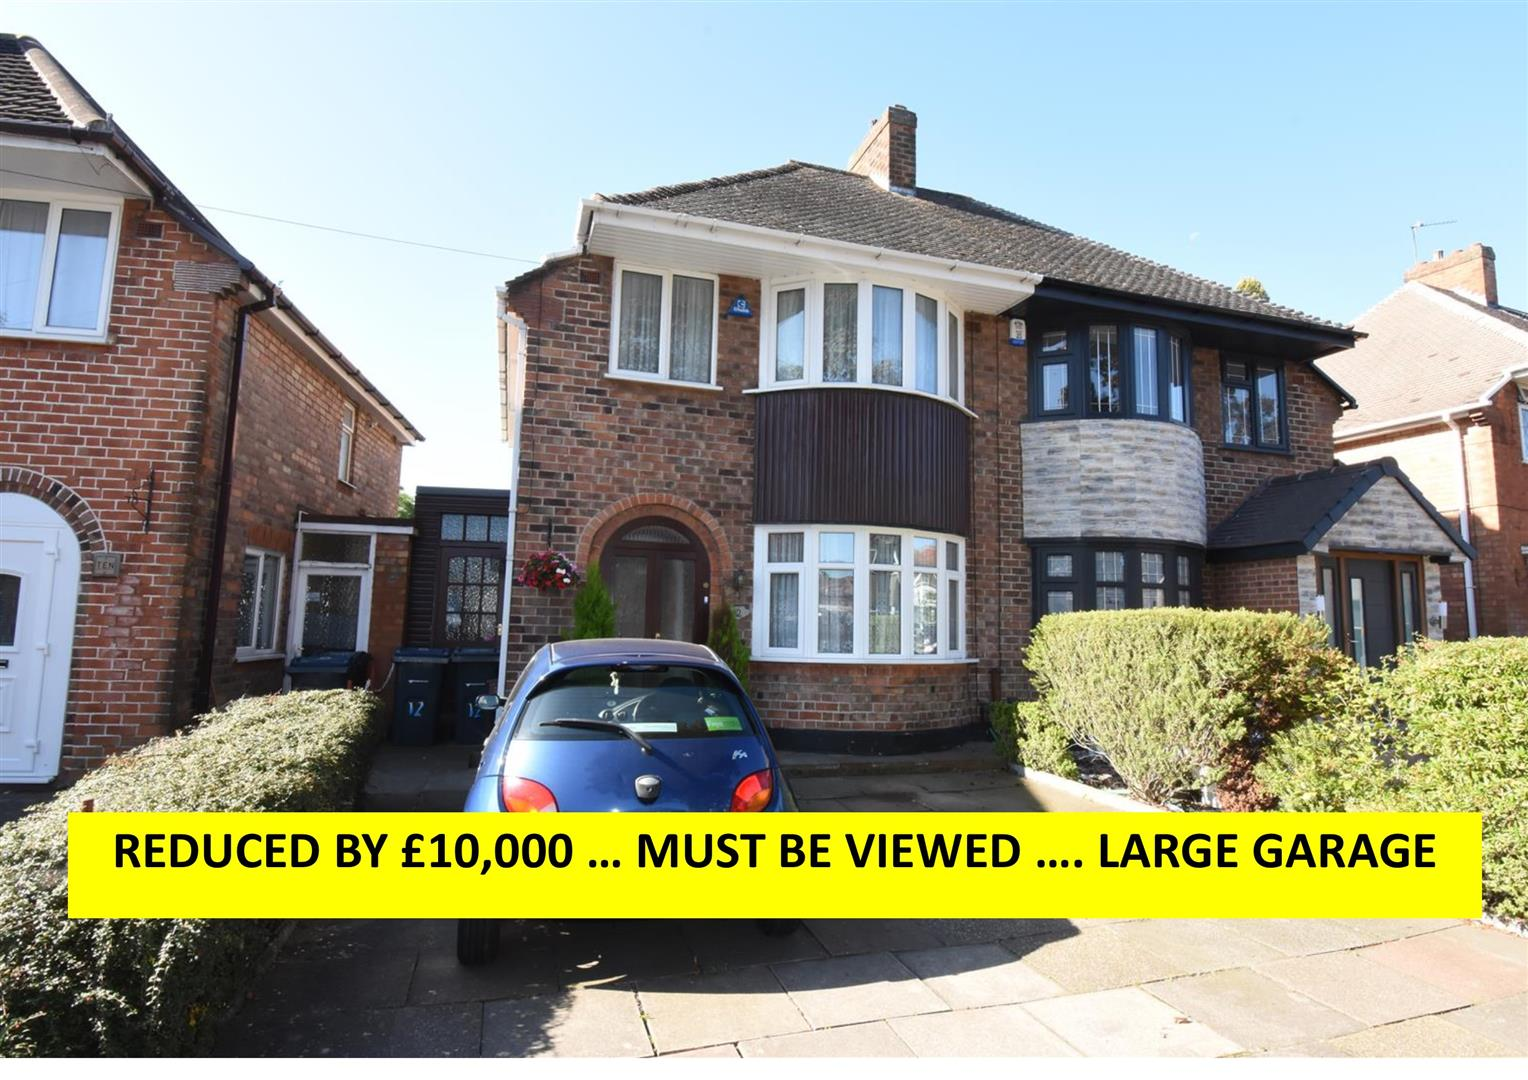 3 bed house for sale in Fowey Road, Hodge Hill, Birmingham - Property Image 1